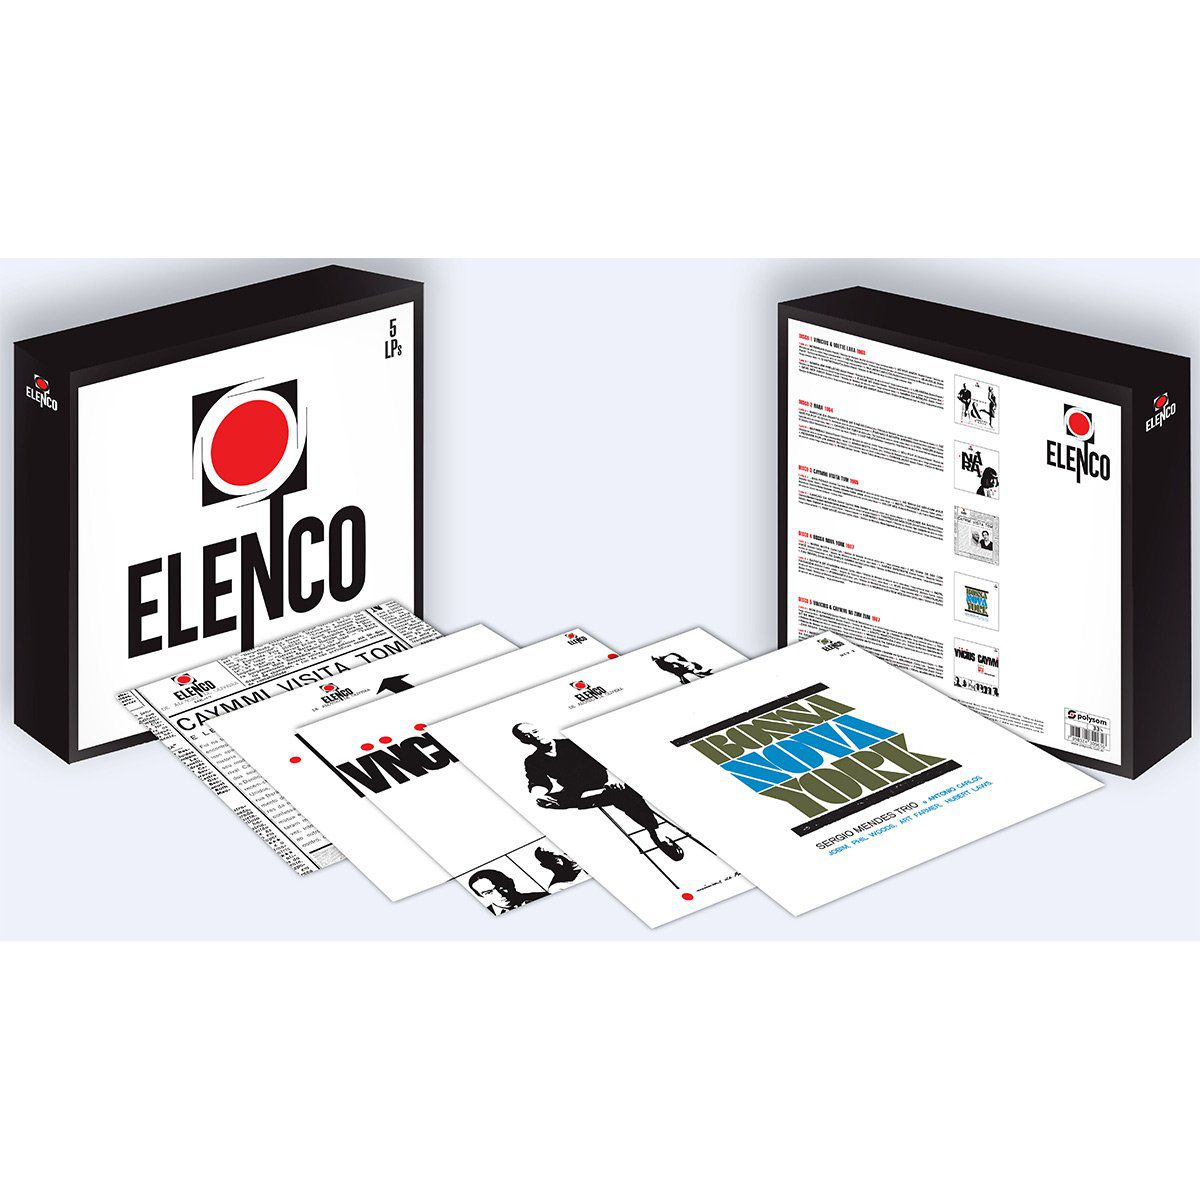 LP Box Deluxe Elenco  - bandUP Store Marketplace